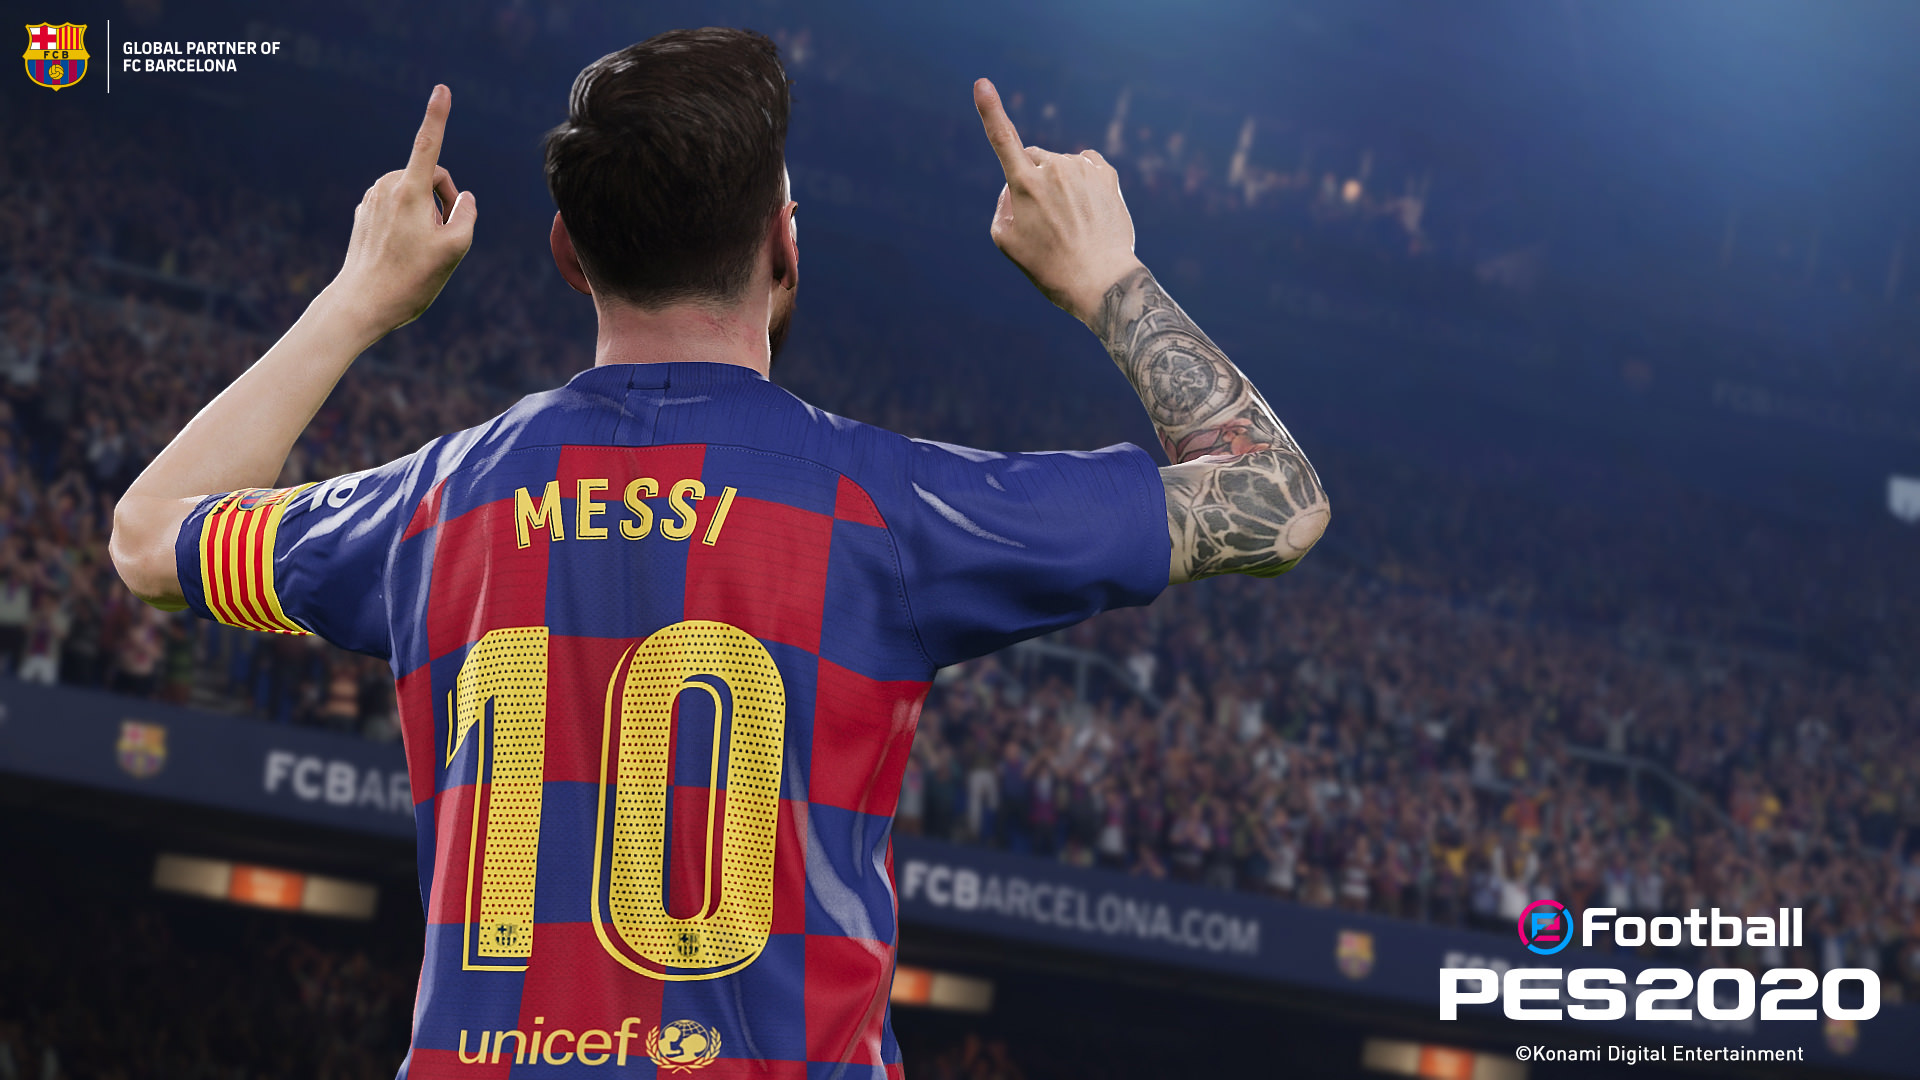 PES 2020 Screenshots FIFPlay 1920x1080